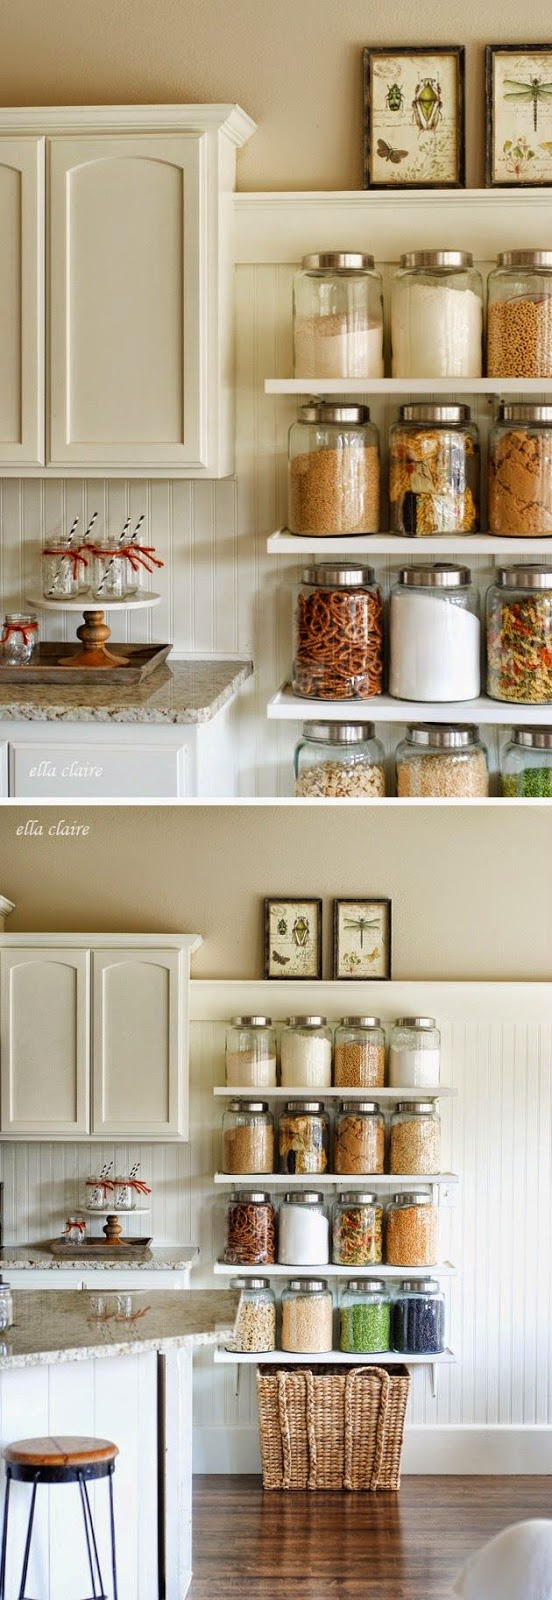 Beautiful And Functional Storage With Kitchen Open: How To Style Open Shelving In The Kitchen So It's